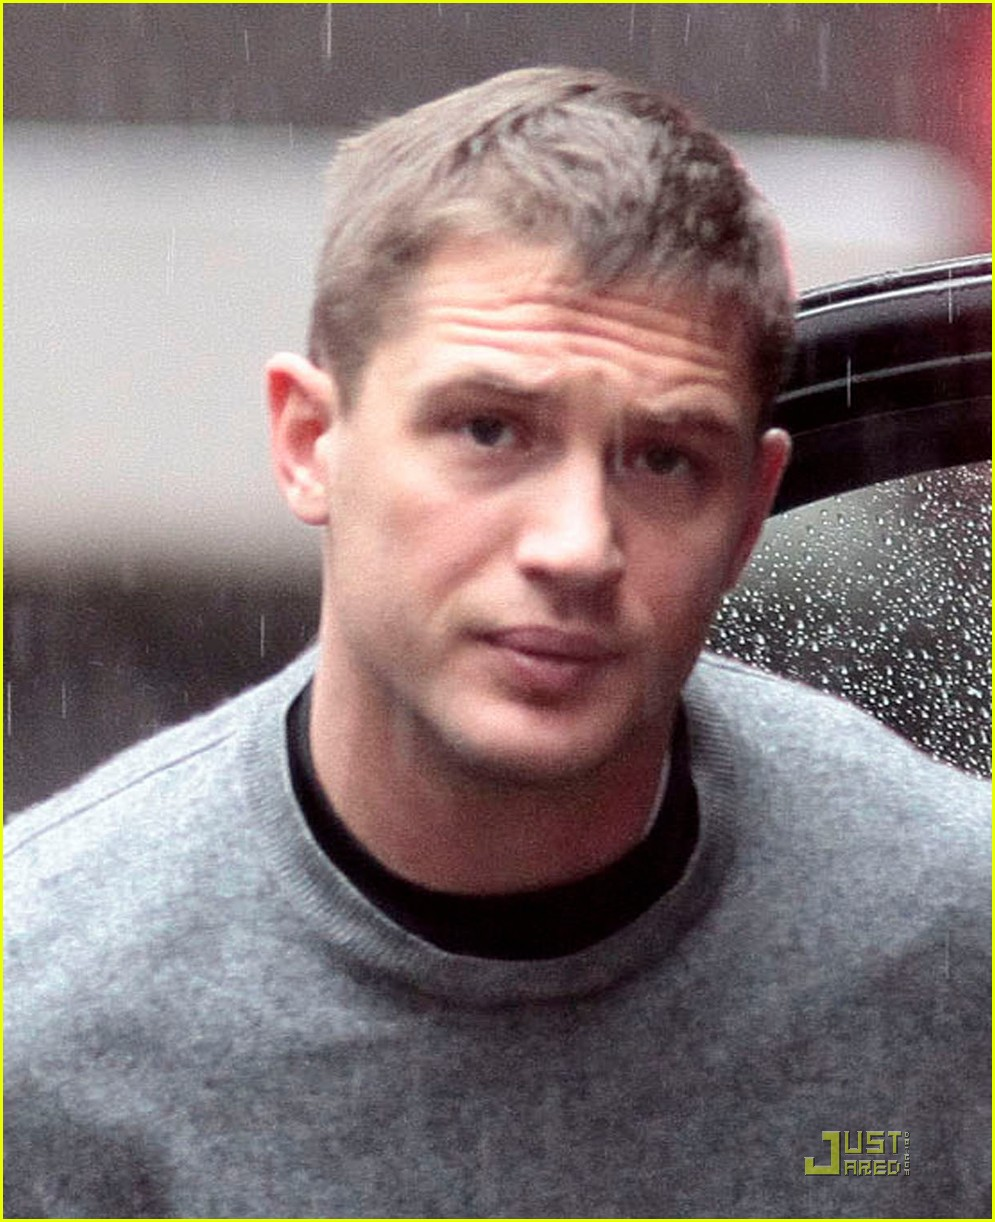 tom hardy hairstyle : Tom Hardy Hairstyle This Means War www.galleryhip.com - The Hippest ...